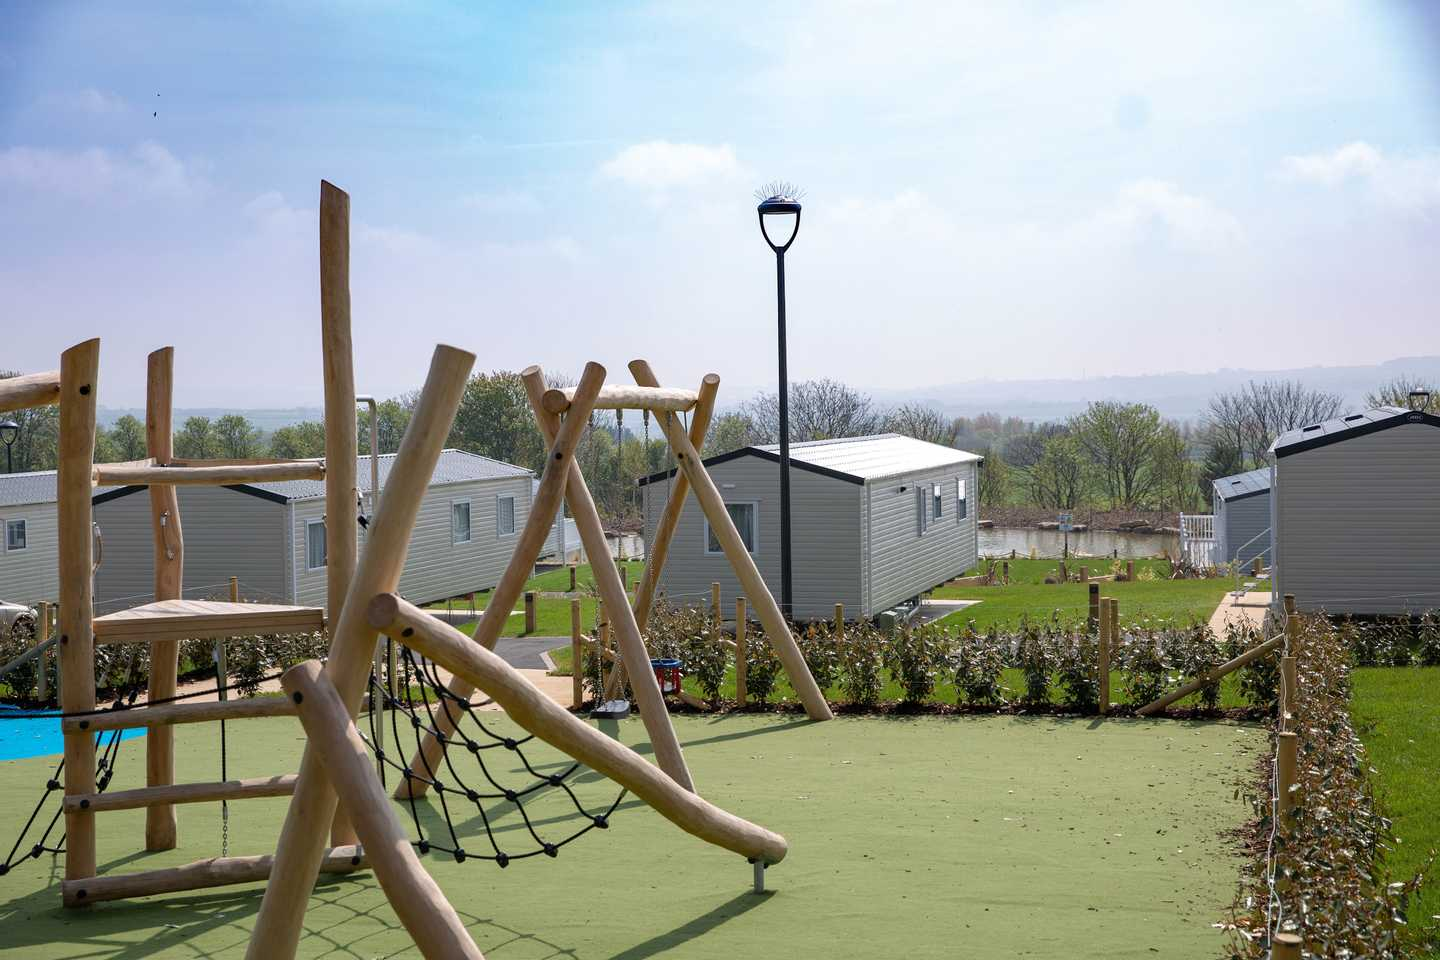 Let the kids roam free in our Wold Vale play area